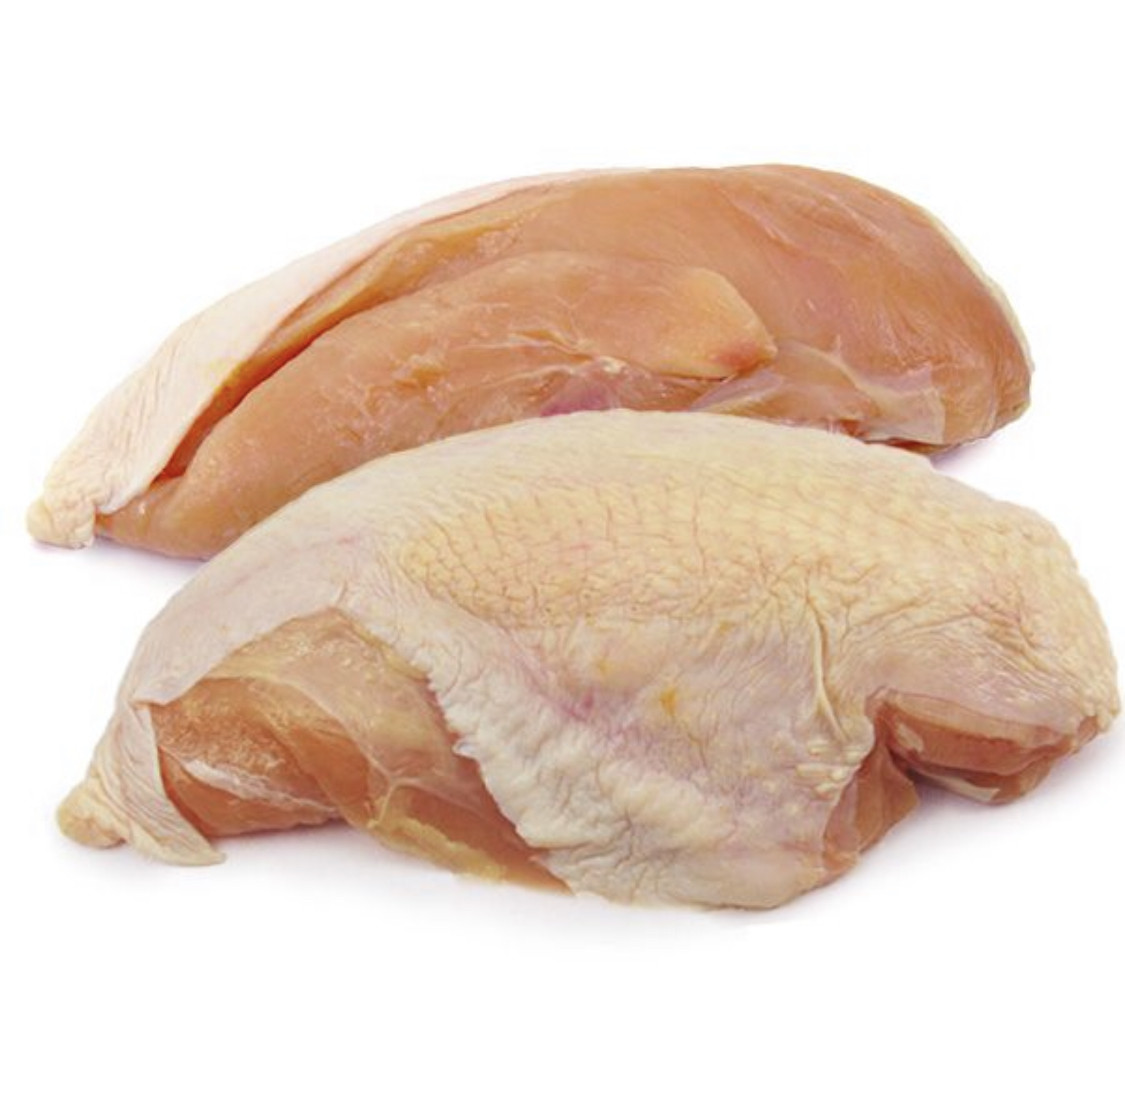 Pastured Chicken Boneless Breasts